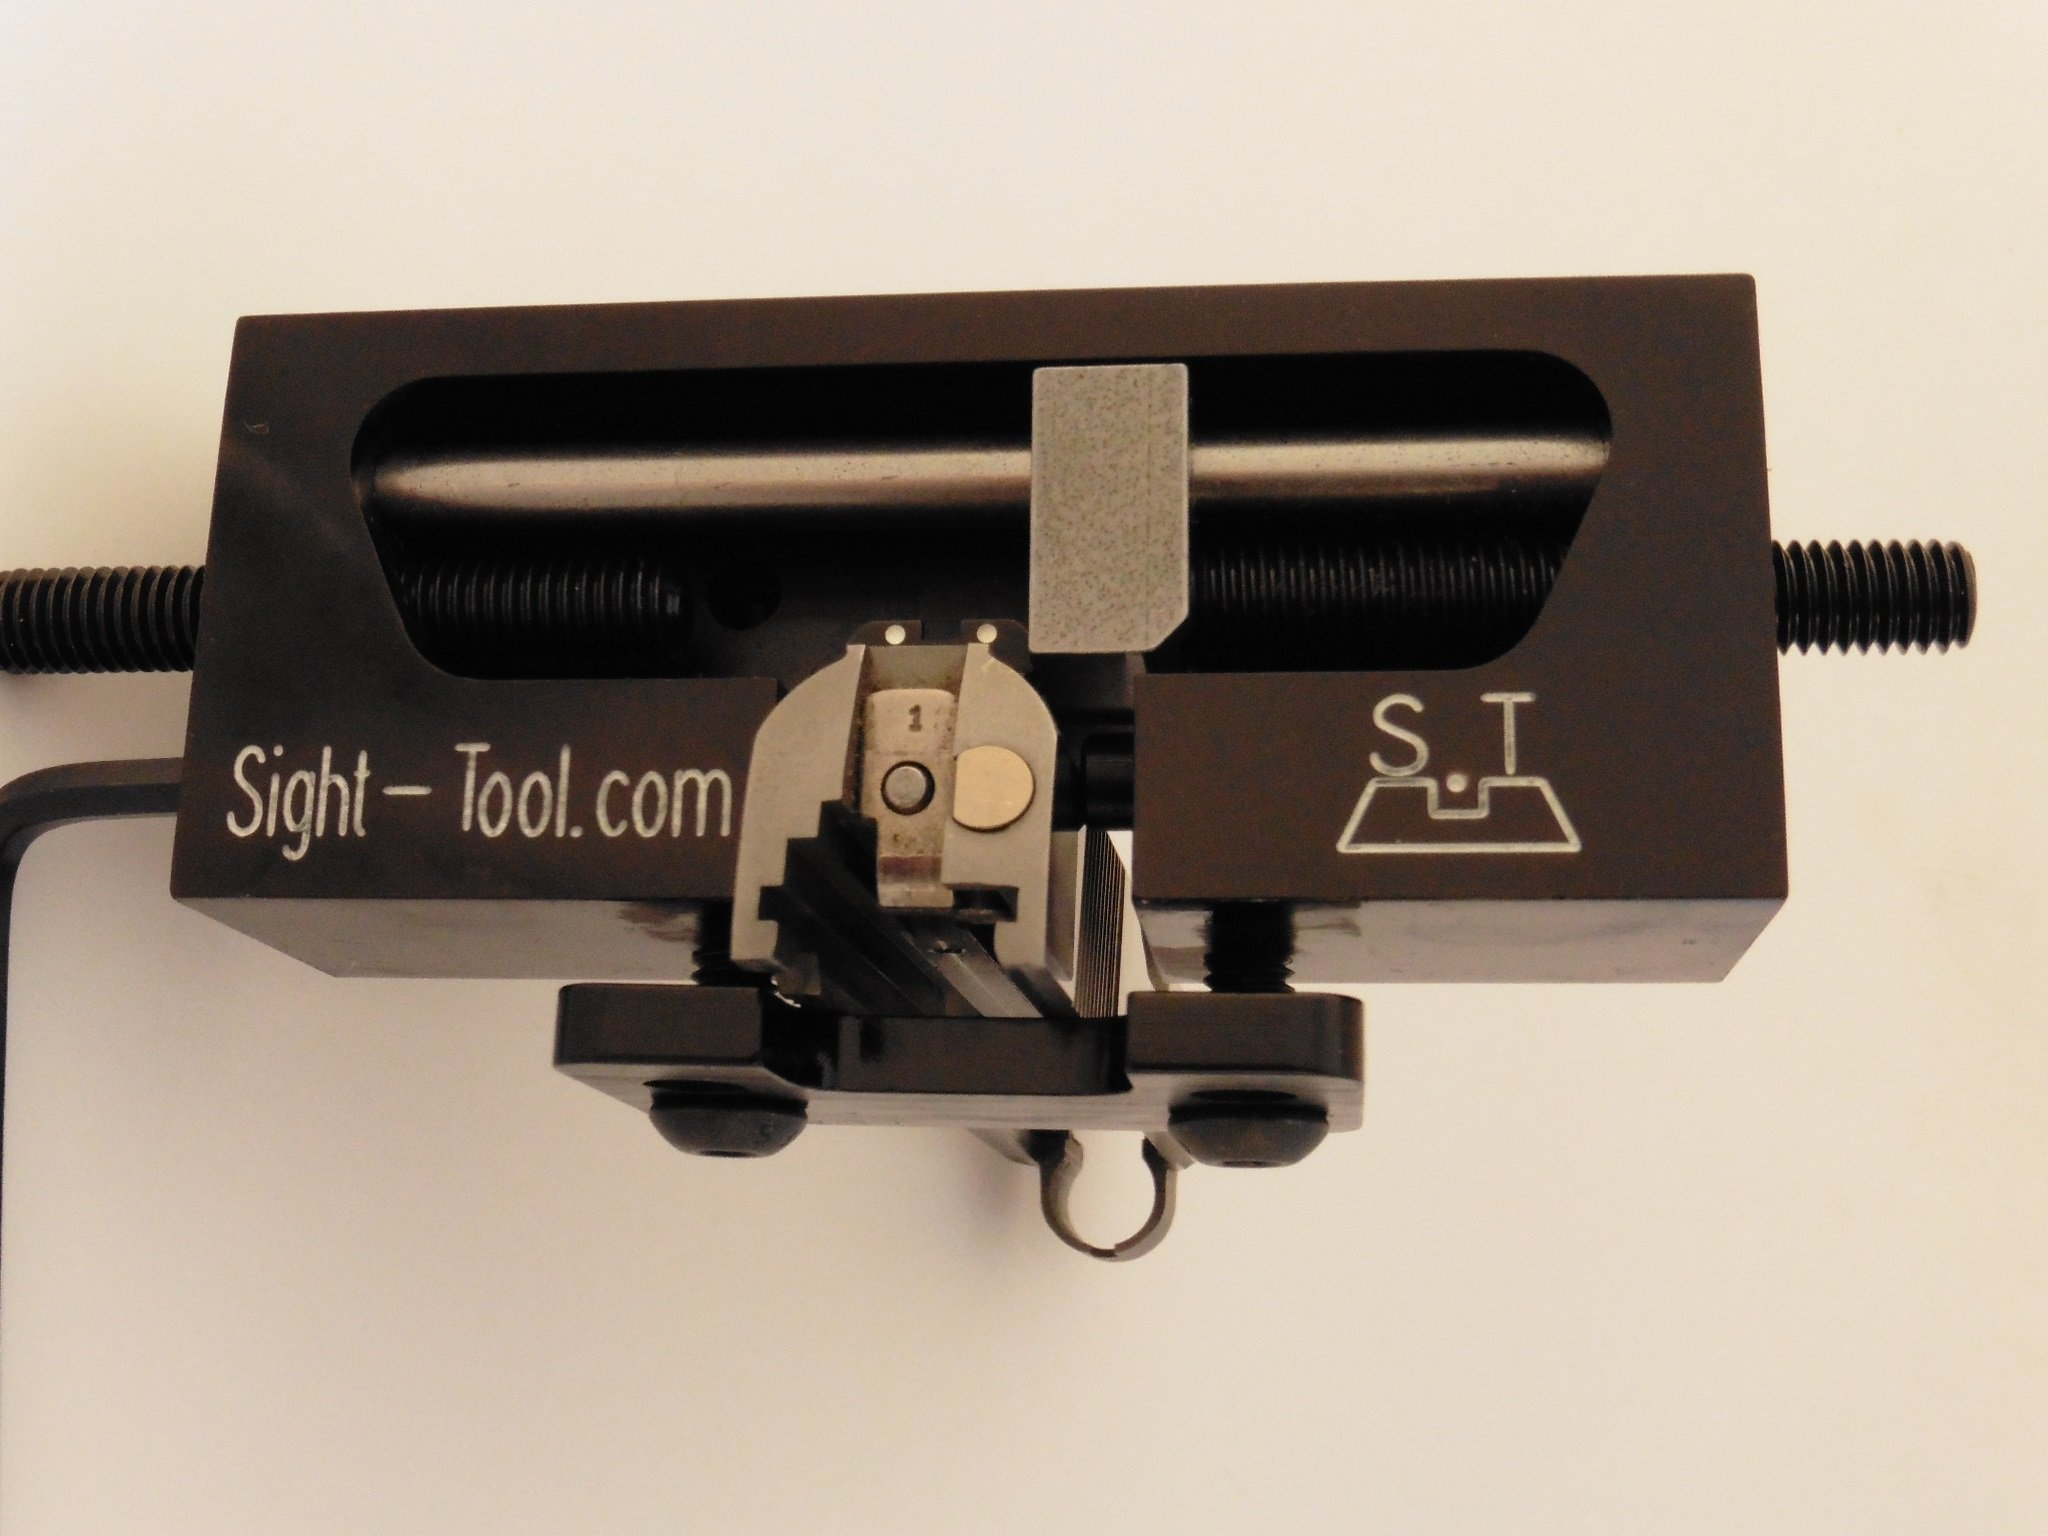 Universal Handgun Sight Pusher Tool for 1911 Sig springfield and others* Best tool on the market for front or rear sights* MADE IN USA by sight-tool.com (Image #2)